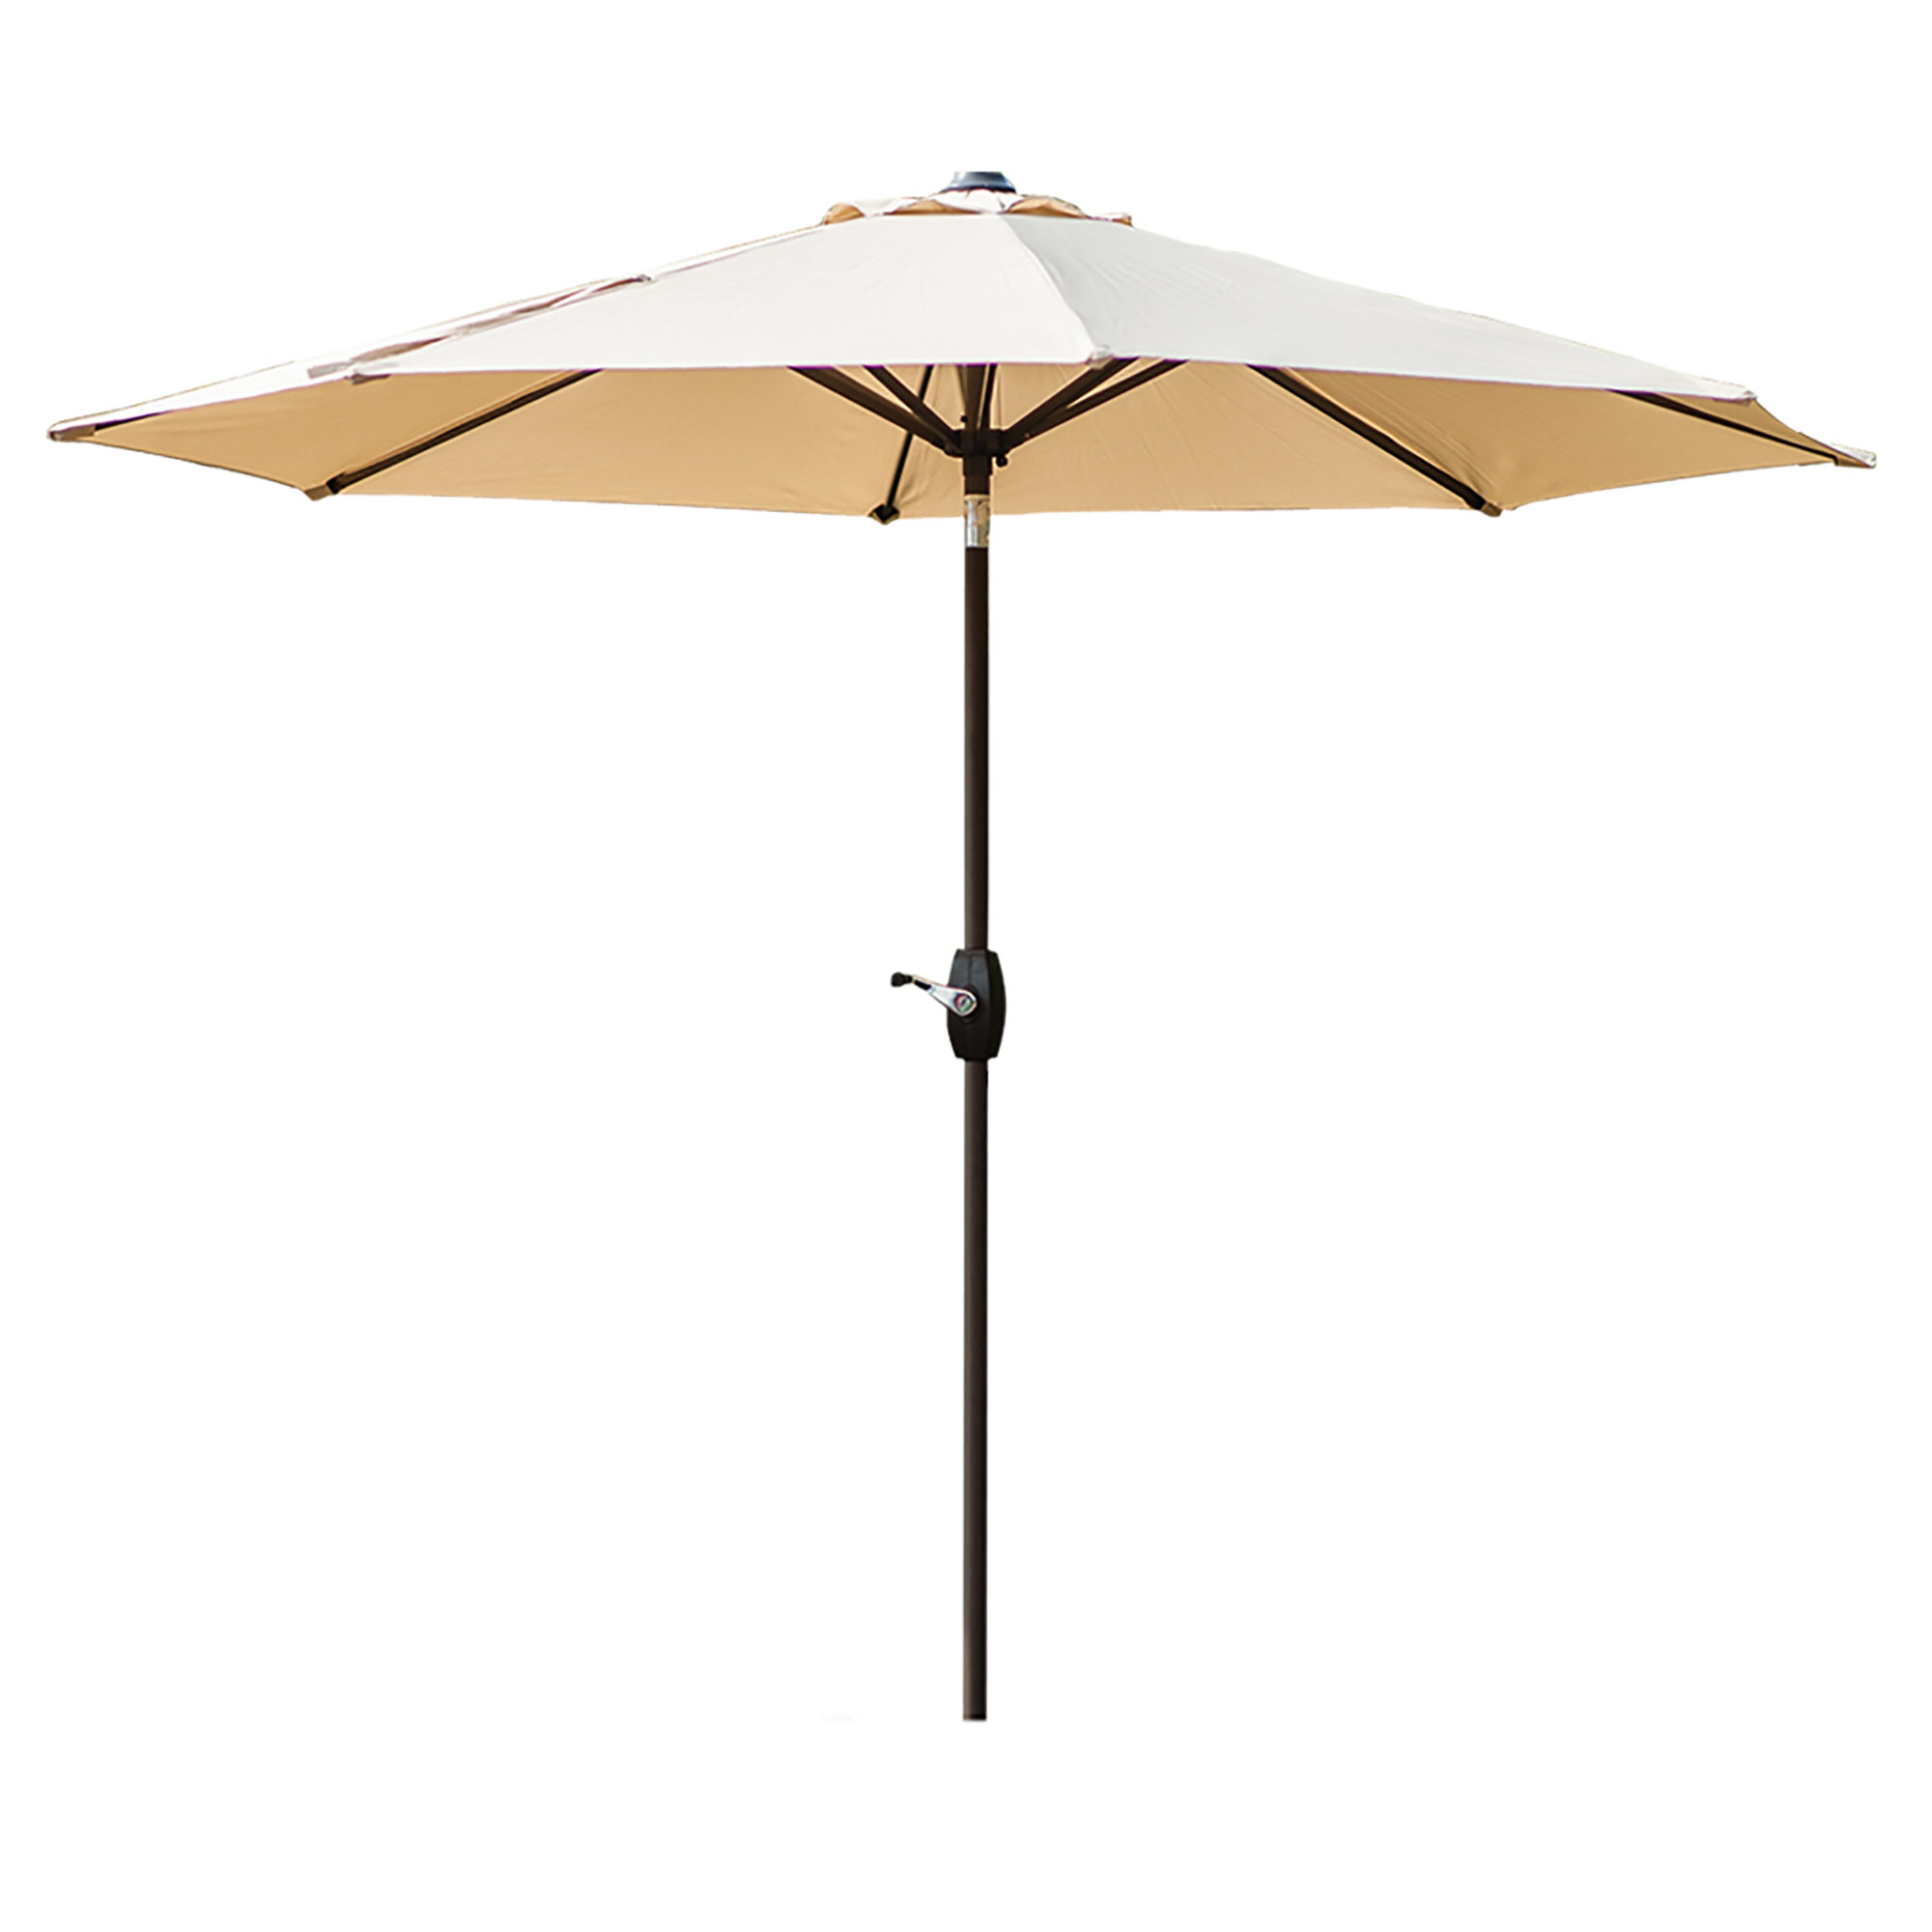 Most Recent Zadie Twin Rectangular Market Umbrellas Intended For Charlton Home Kenn 9' Market Umbrella (View 9 of 20)